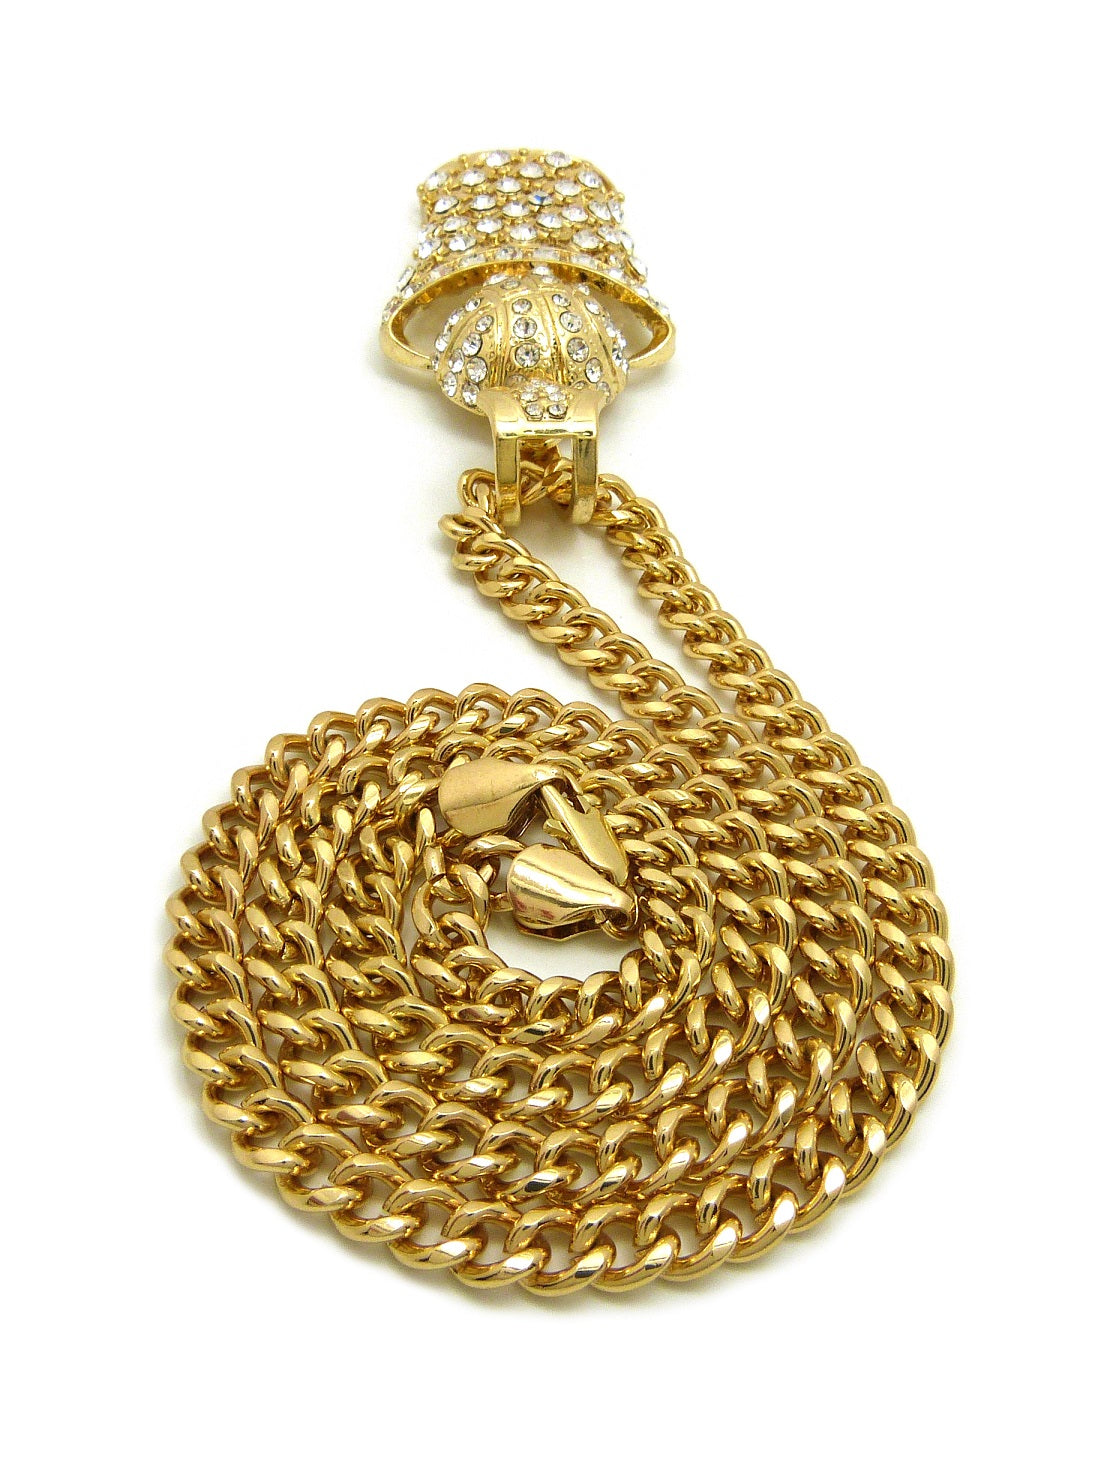 Stone Stud Hollow Basketball Net Pendant with 6mm Cuban Chain in Gold-Tone, 24""